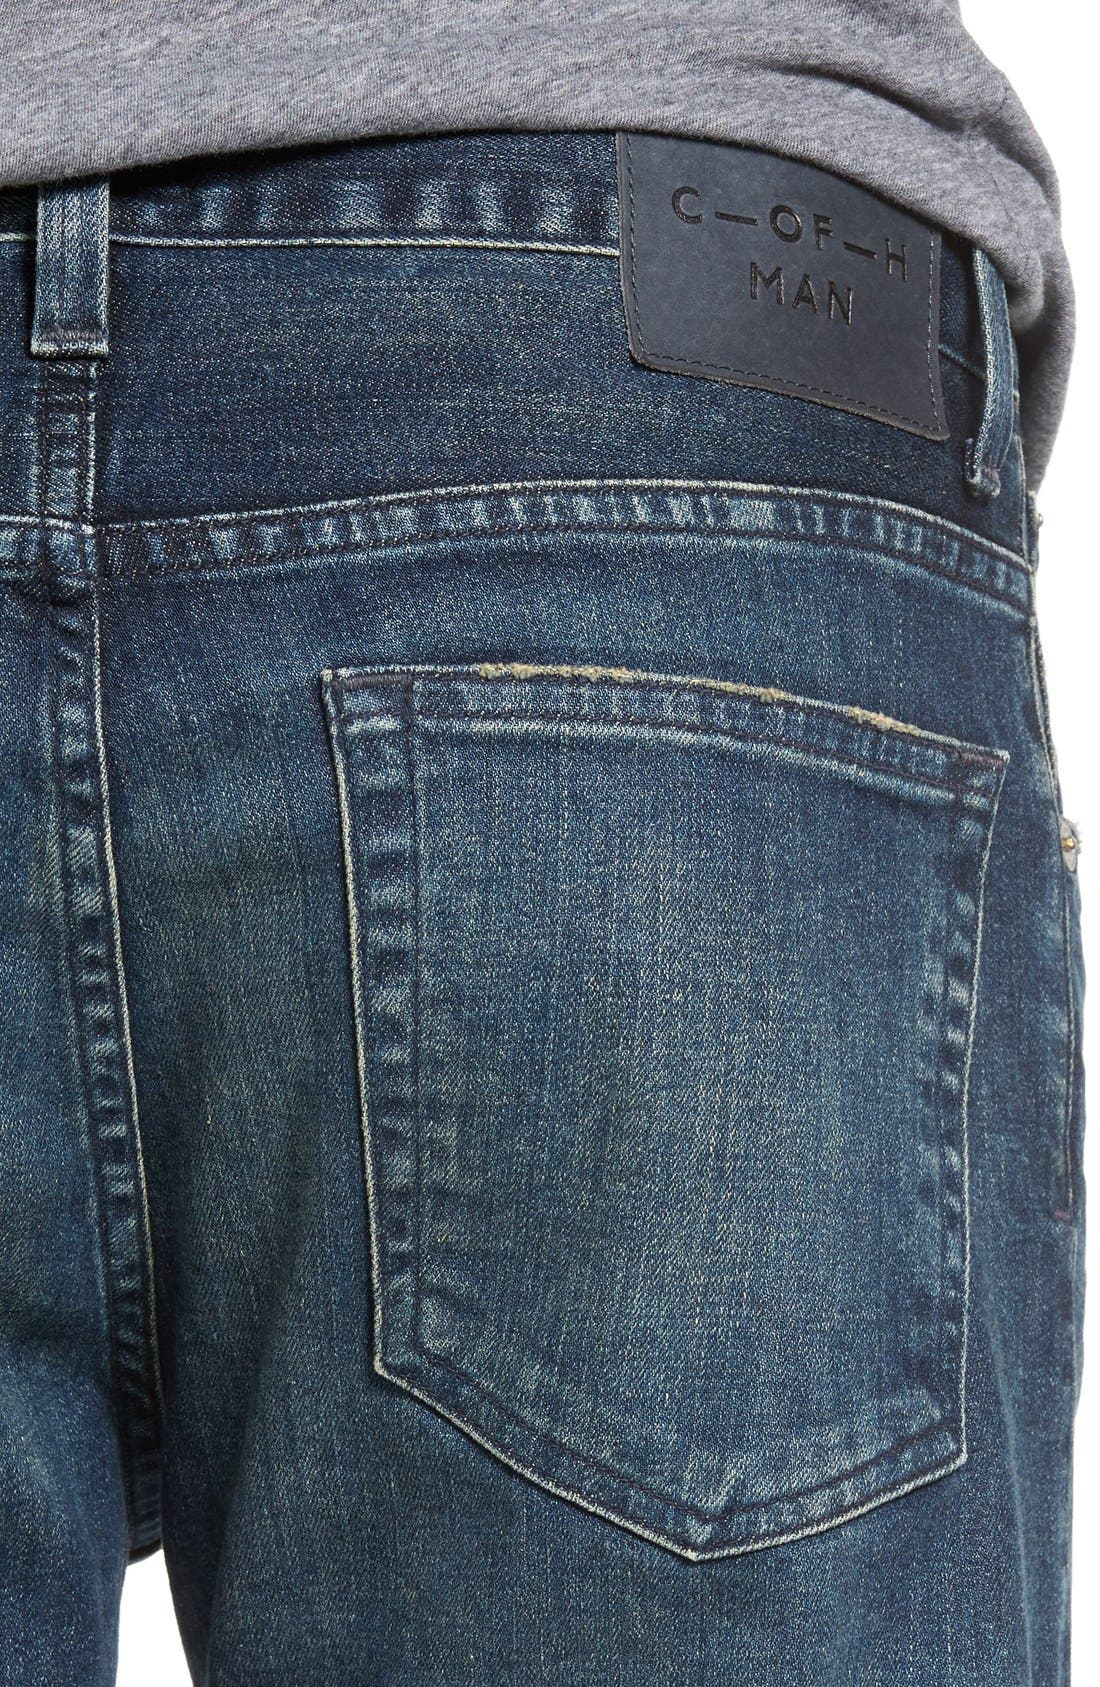 Bowery Slim Fit Jeans,                             Alternate thumbnail 4, color,                             Wild